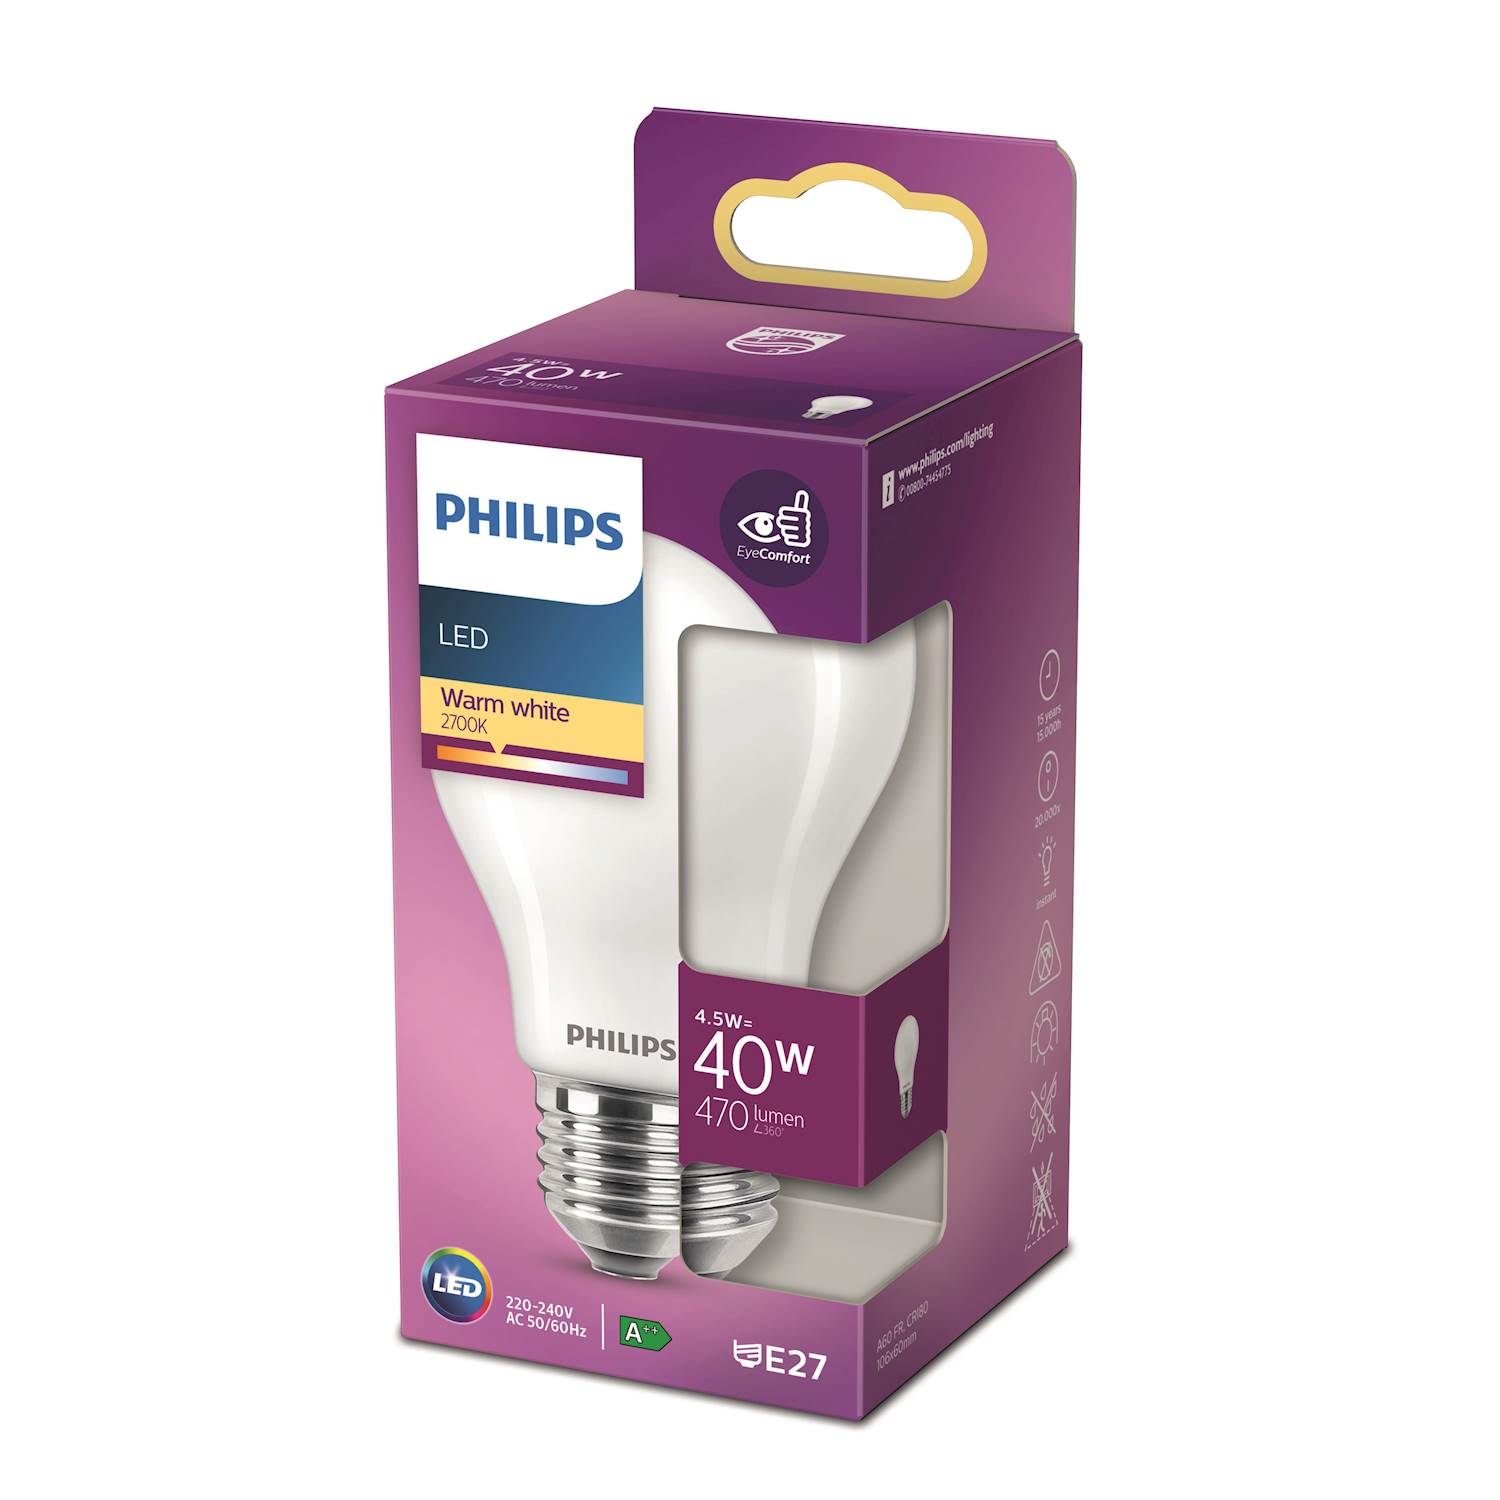 Philips LED Classic 40w norm e27 nd